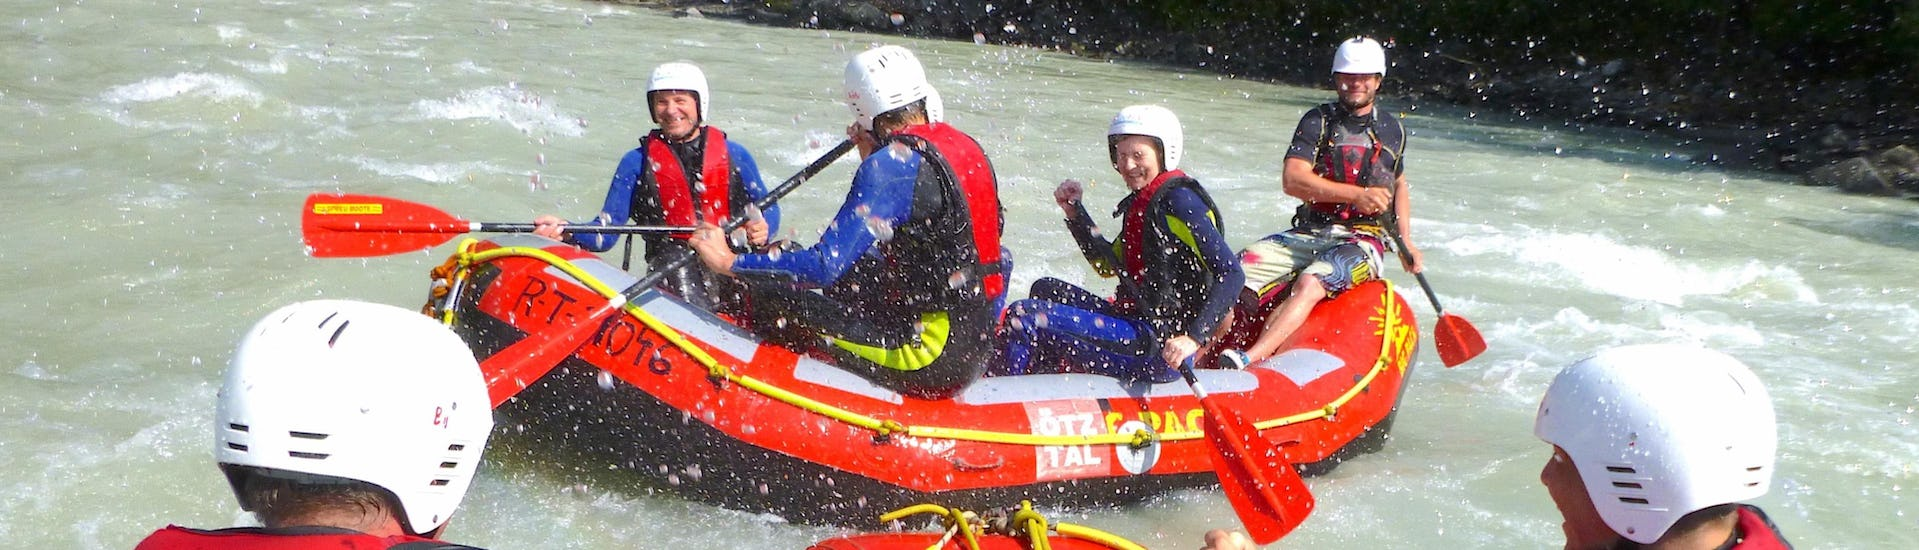 "Water is splashing on the happy participants of the Rafting ""Action"" for Young & Old - Imster Schlucht with CanKick Ötztal."